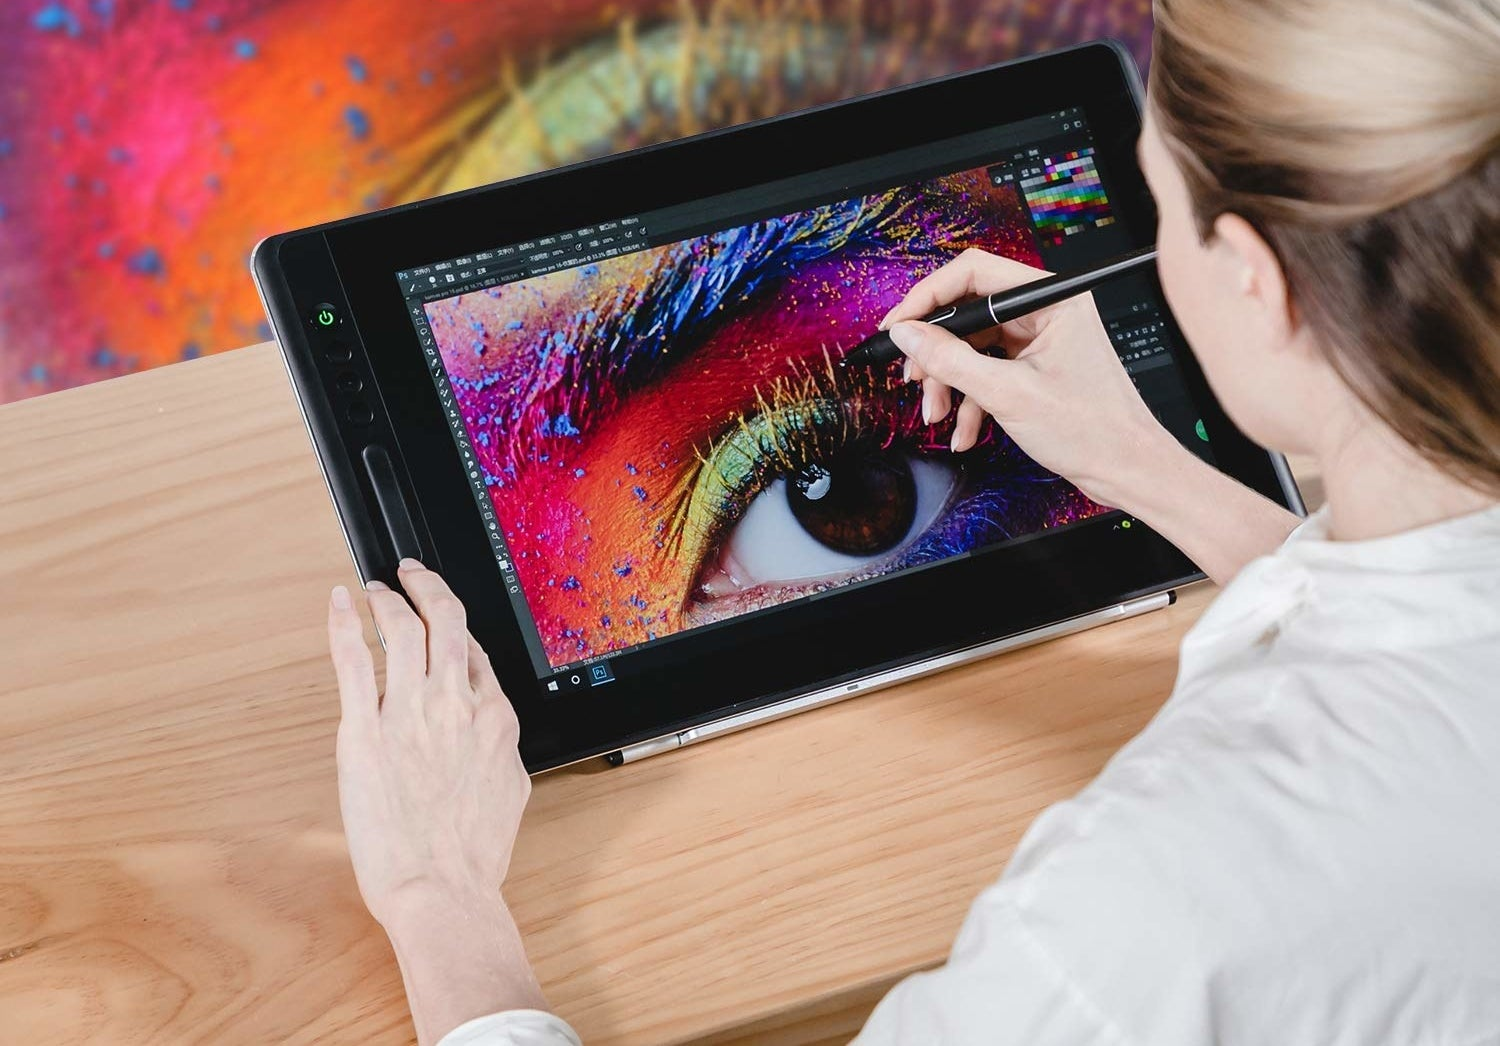 A person working on art on their tablet.